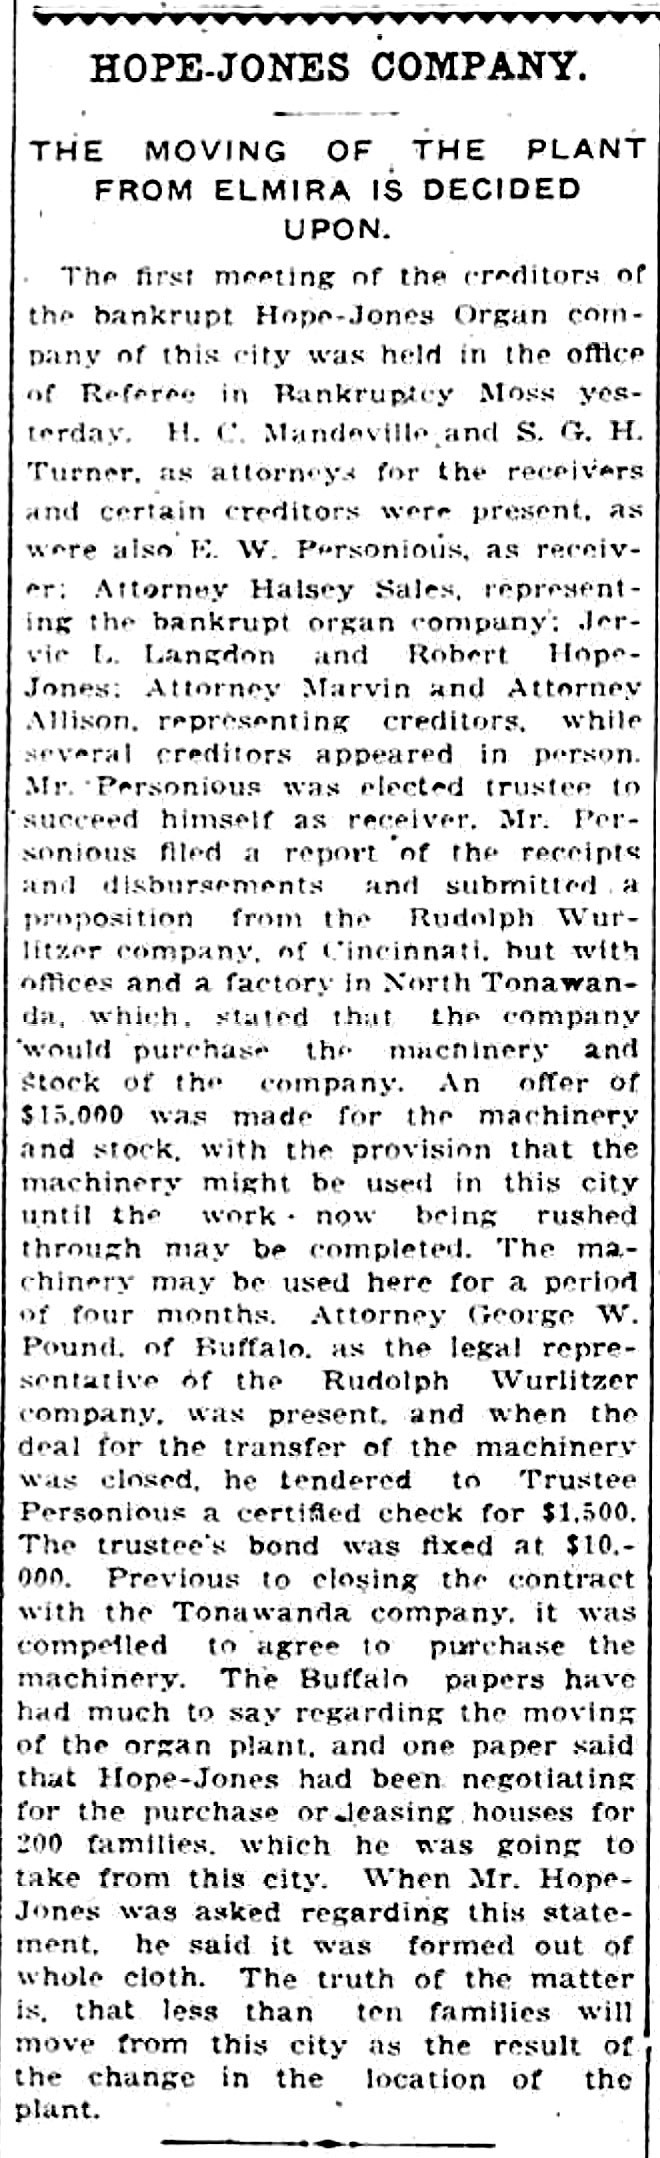 Hope-Jones plant move decided, article (Elmira Telegram, 1910-05-08).jpg